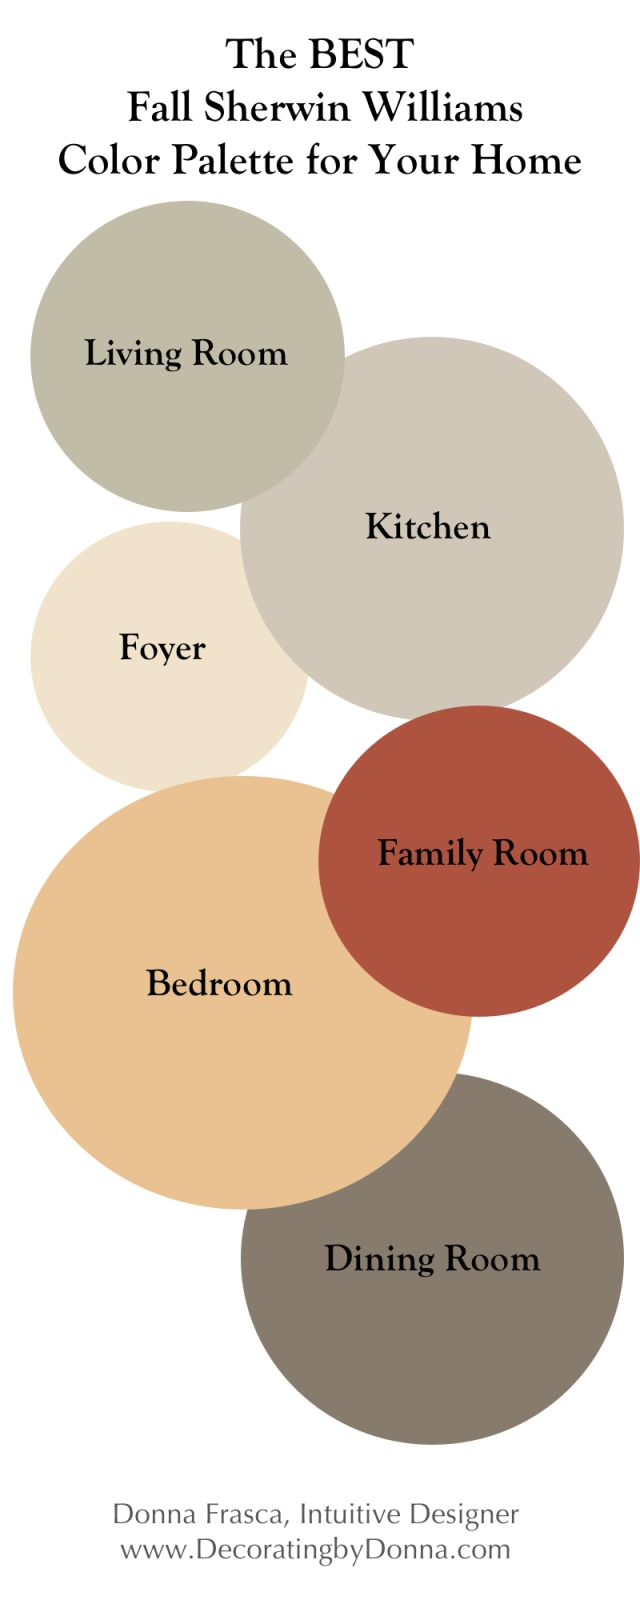 the-best-fall-sherwin-williams-color-palette-for-your-home copy